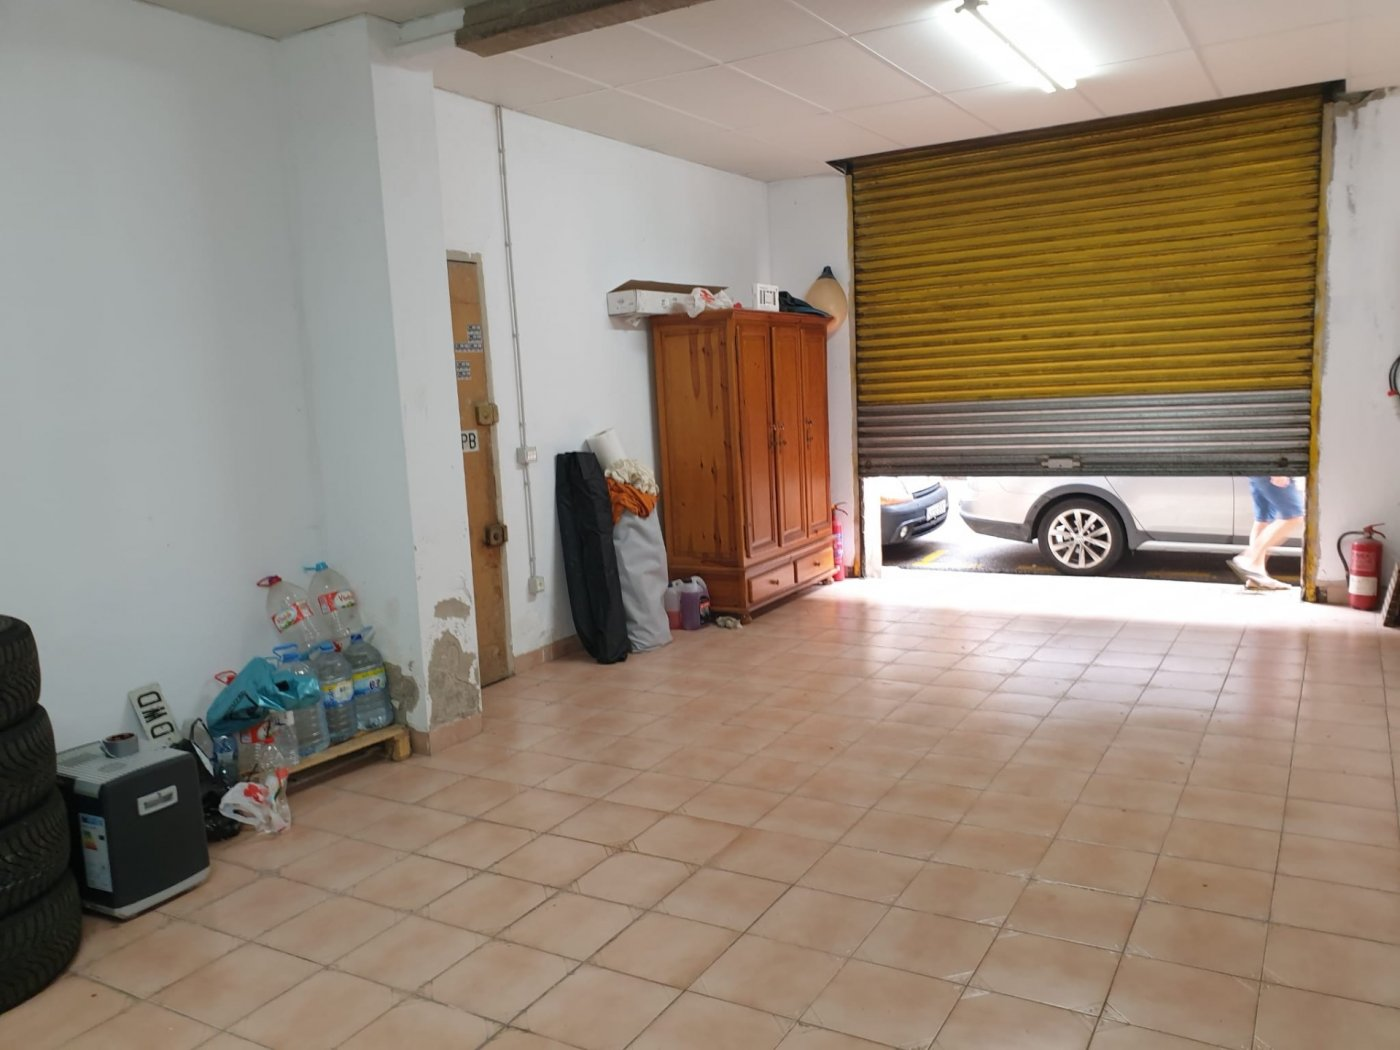 Local de 100 m2  en Sant Joan de Vilatorrada